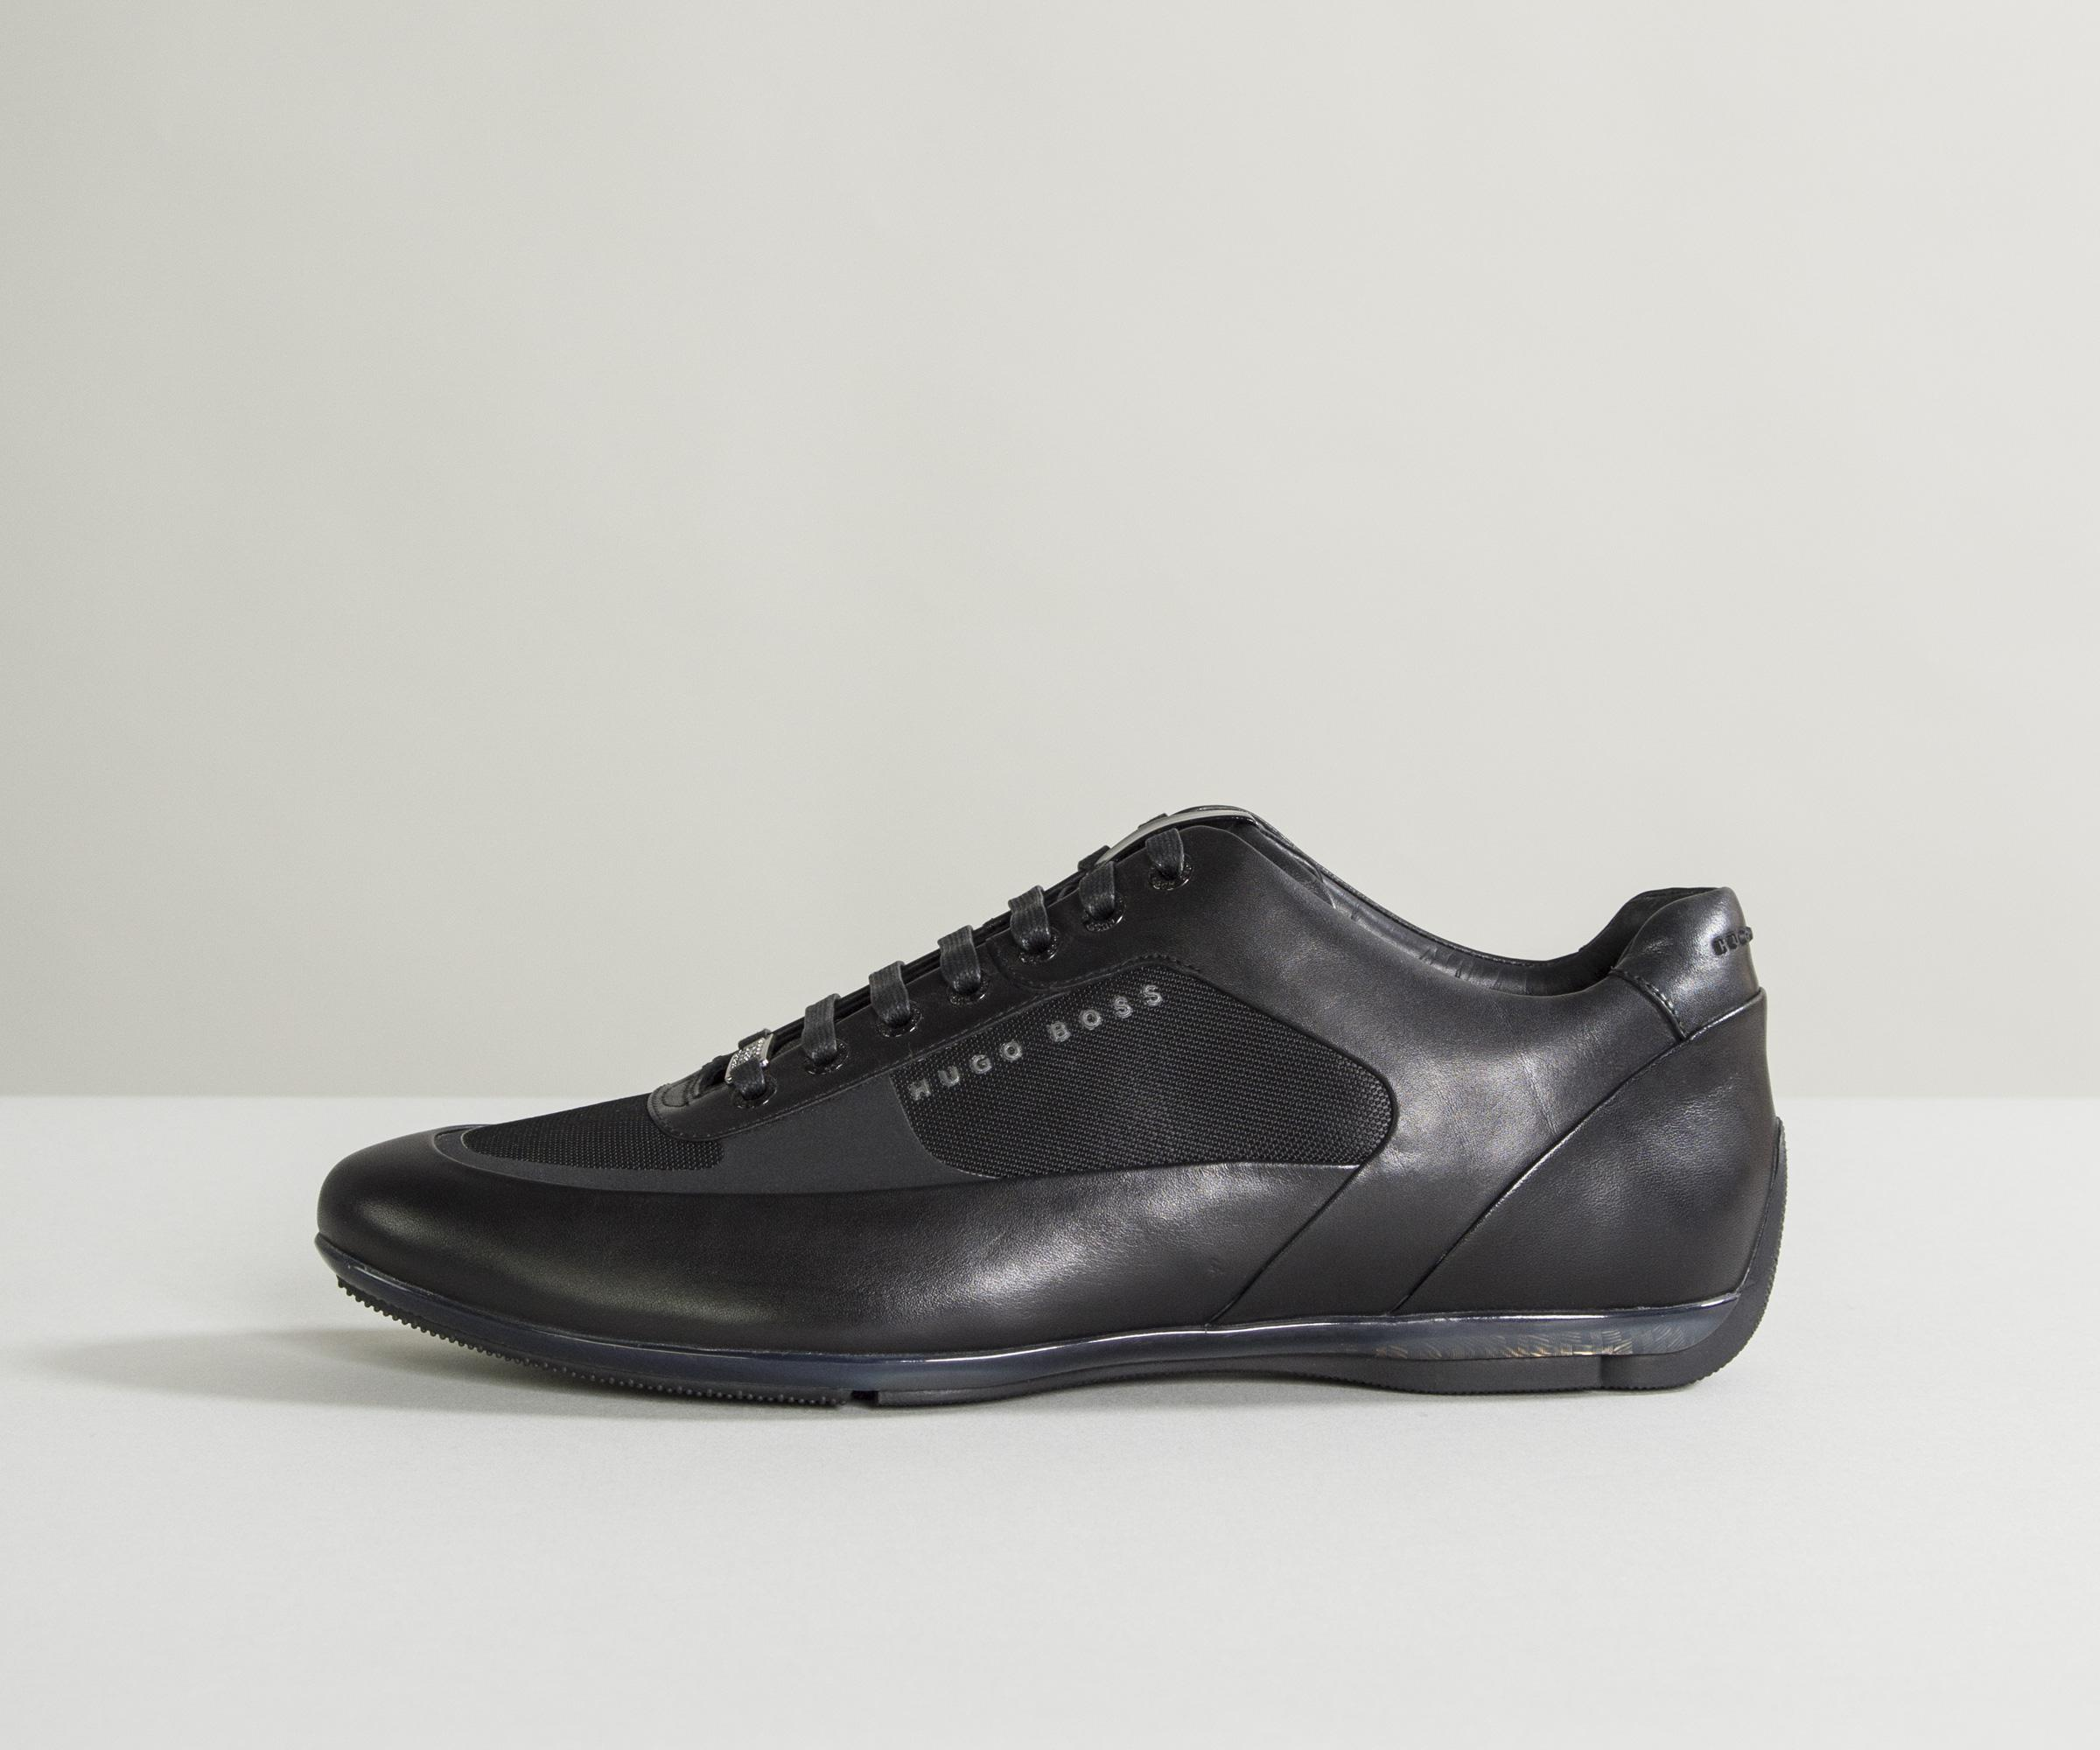 a06df31f1 BOSS 'hbracing_lowp_ltny1' Leather Trainers Black in Black for Men ...